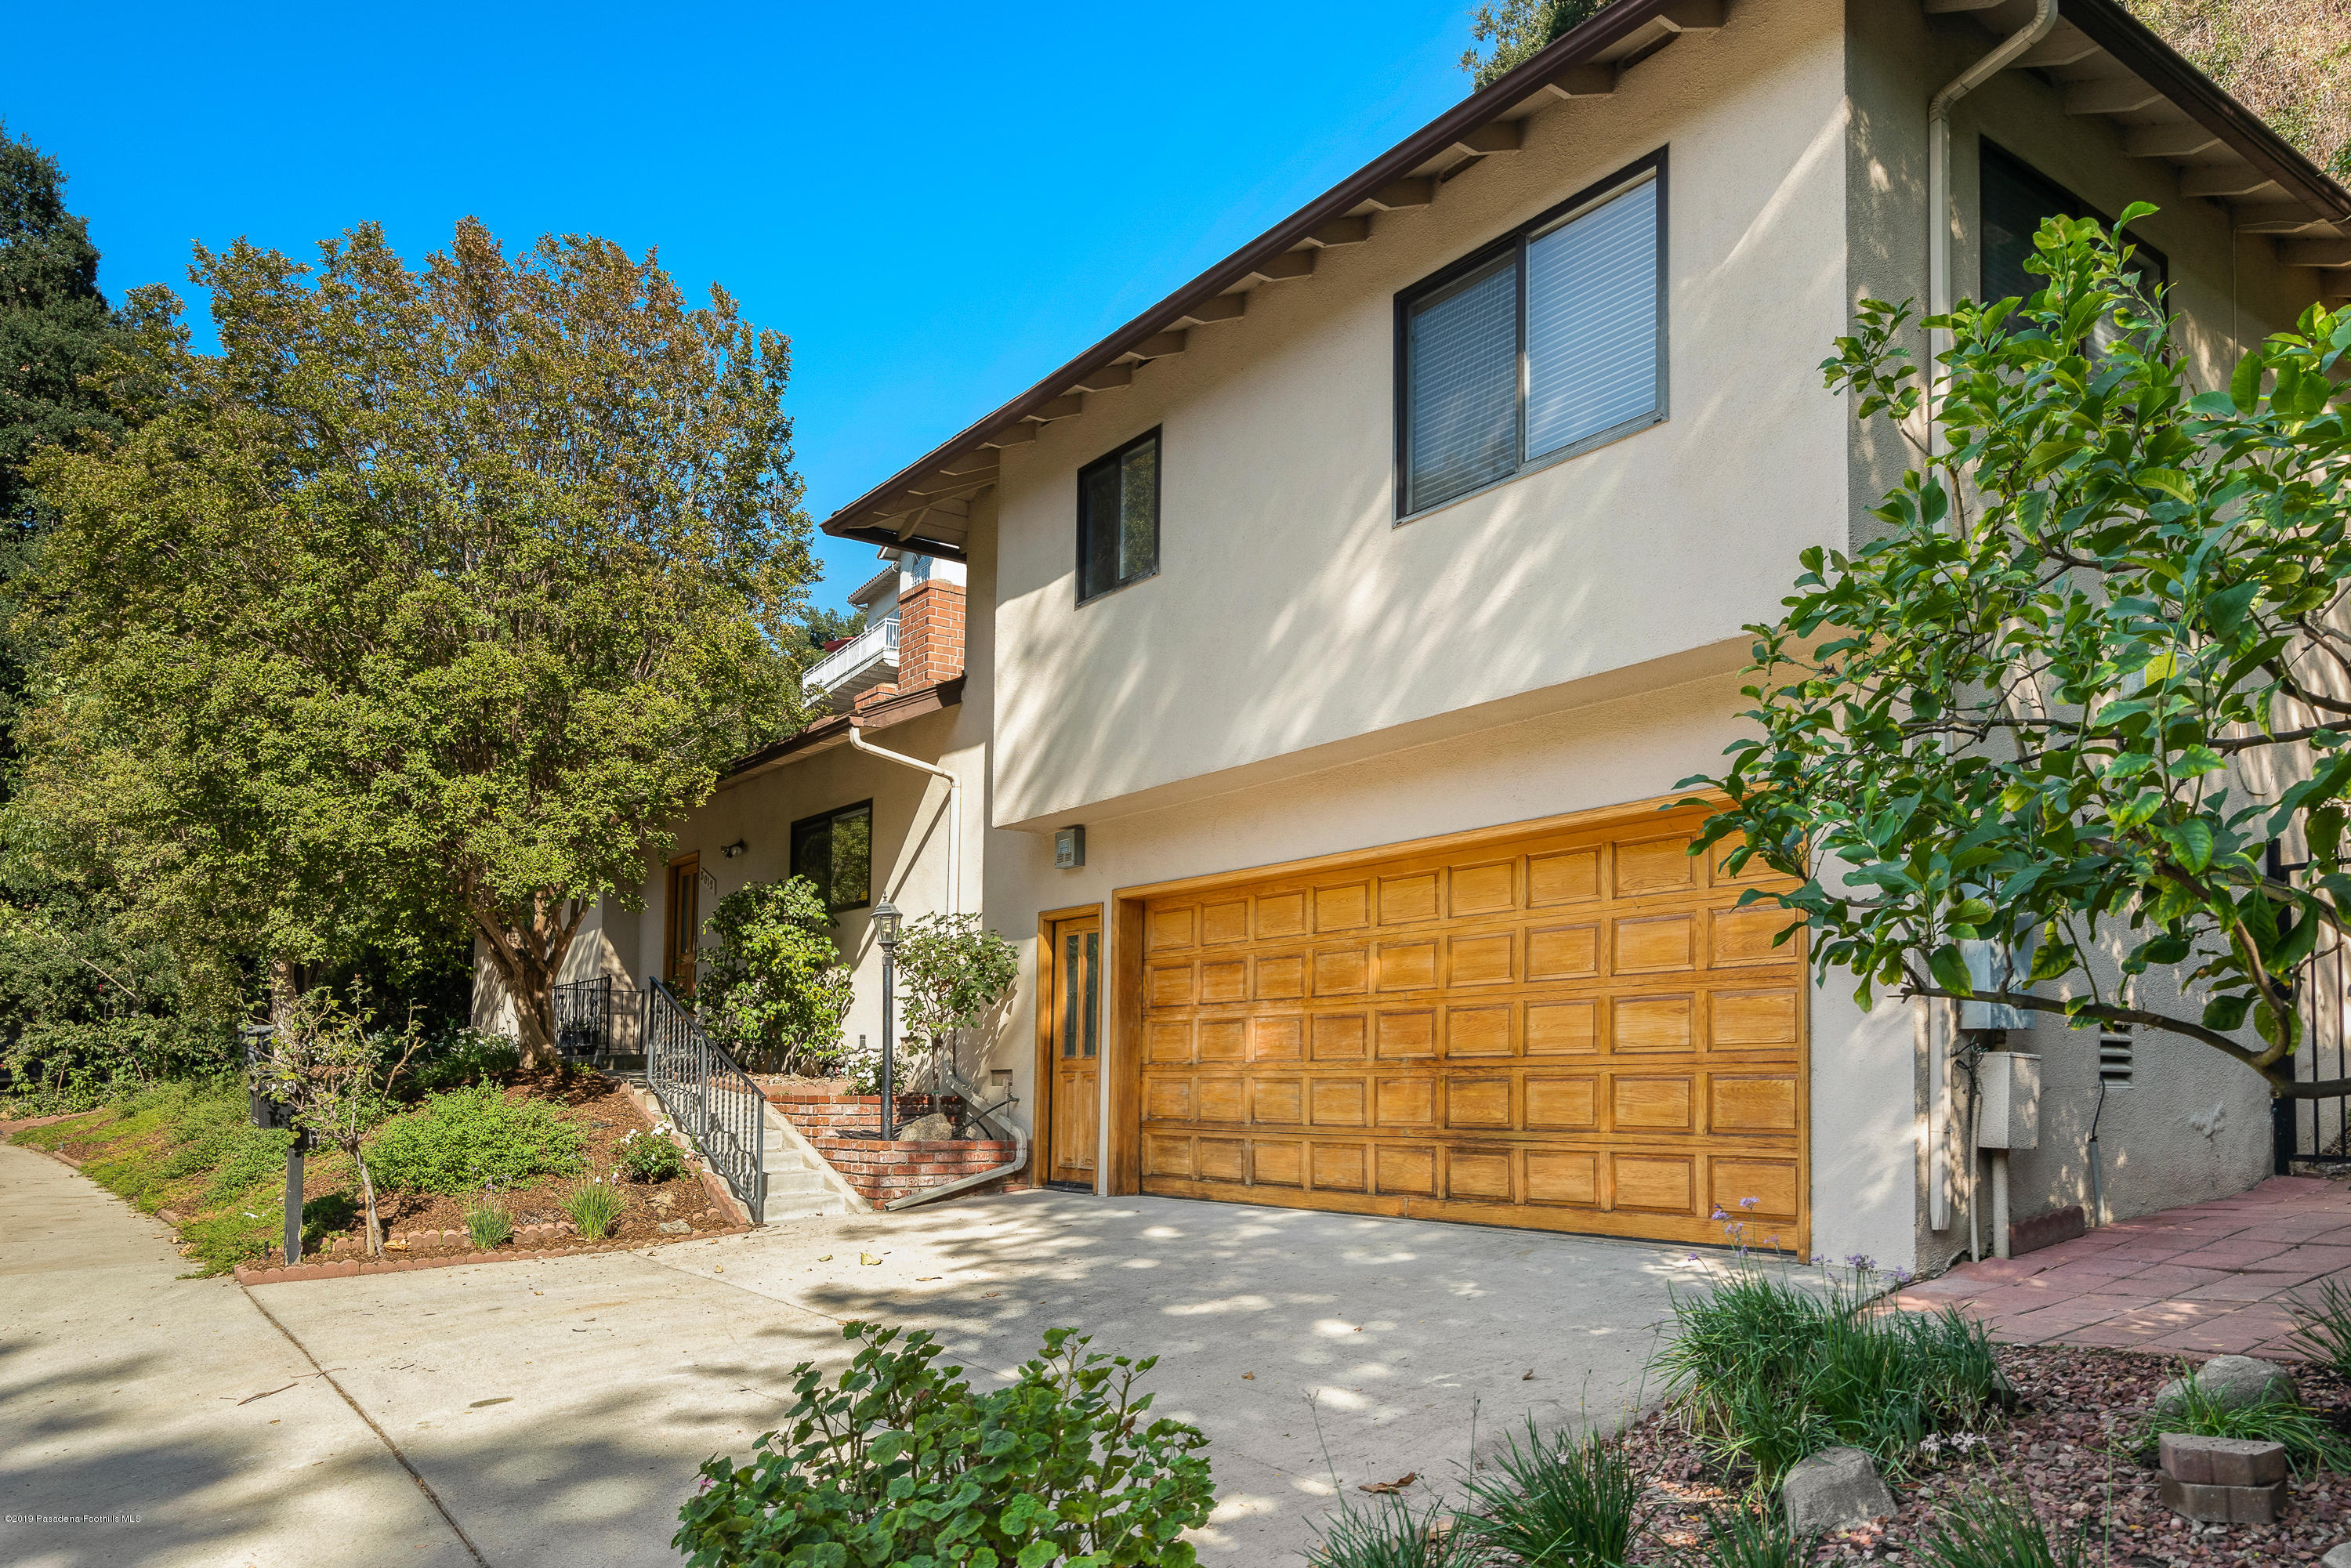 3012 E Chevy Chase Drive, Glendale in Los Angeles County, CA 91206 Home for Sale